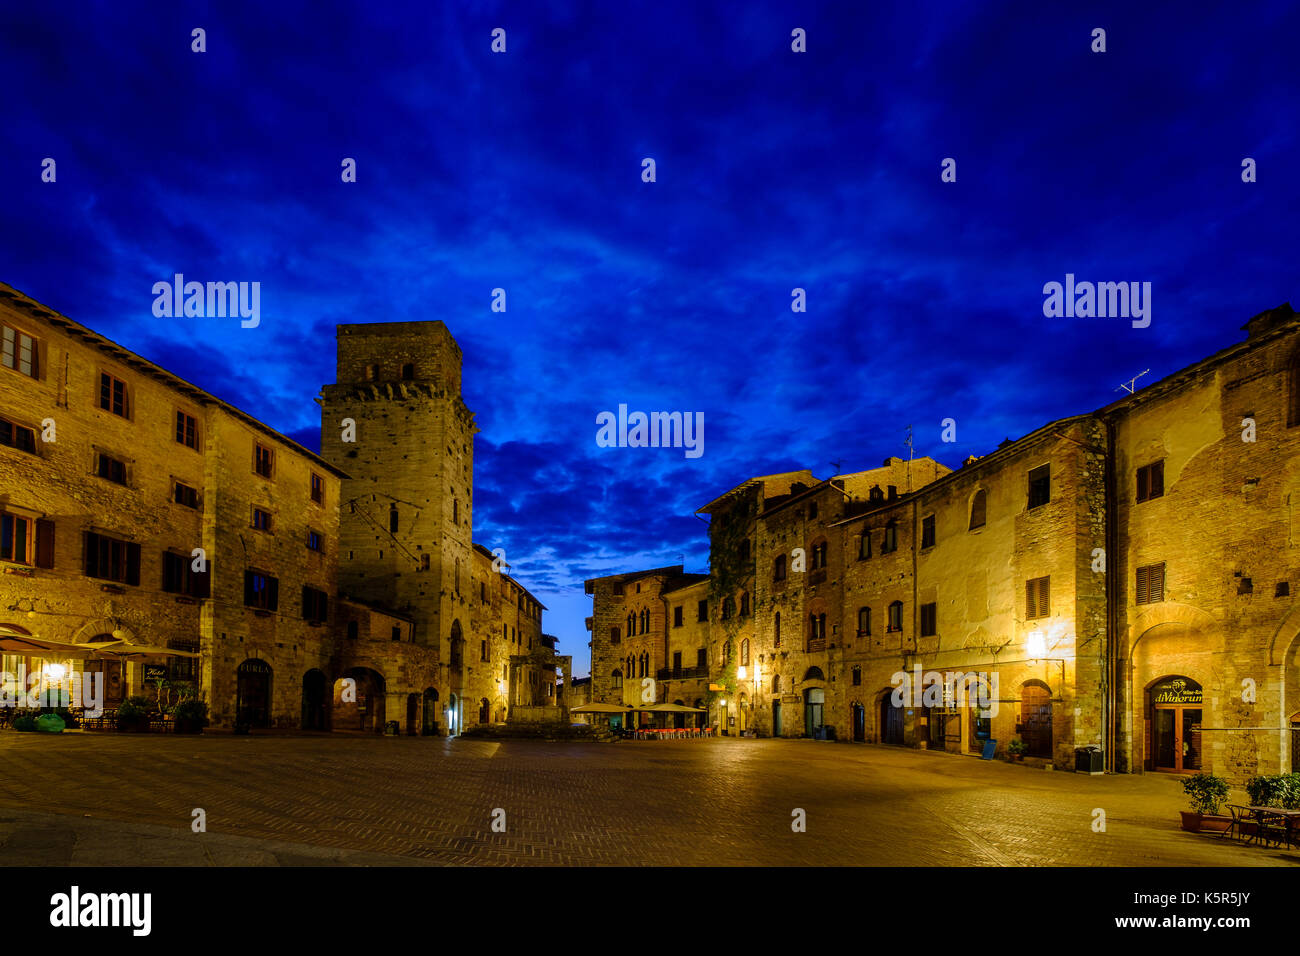 Old houses encircle the Piazza della Cisterna in the middle of the medieval town, illuminated at night - Stock Image